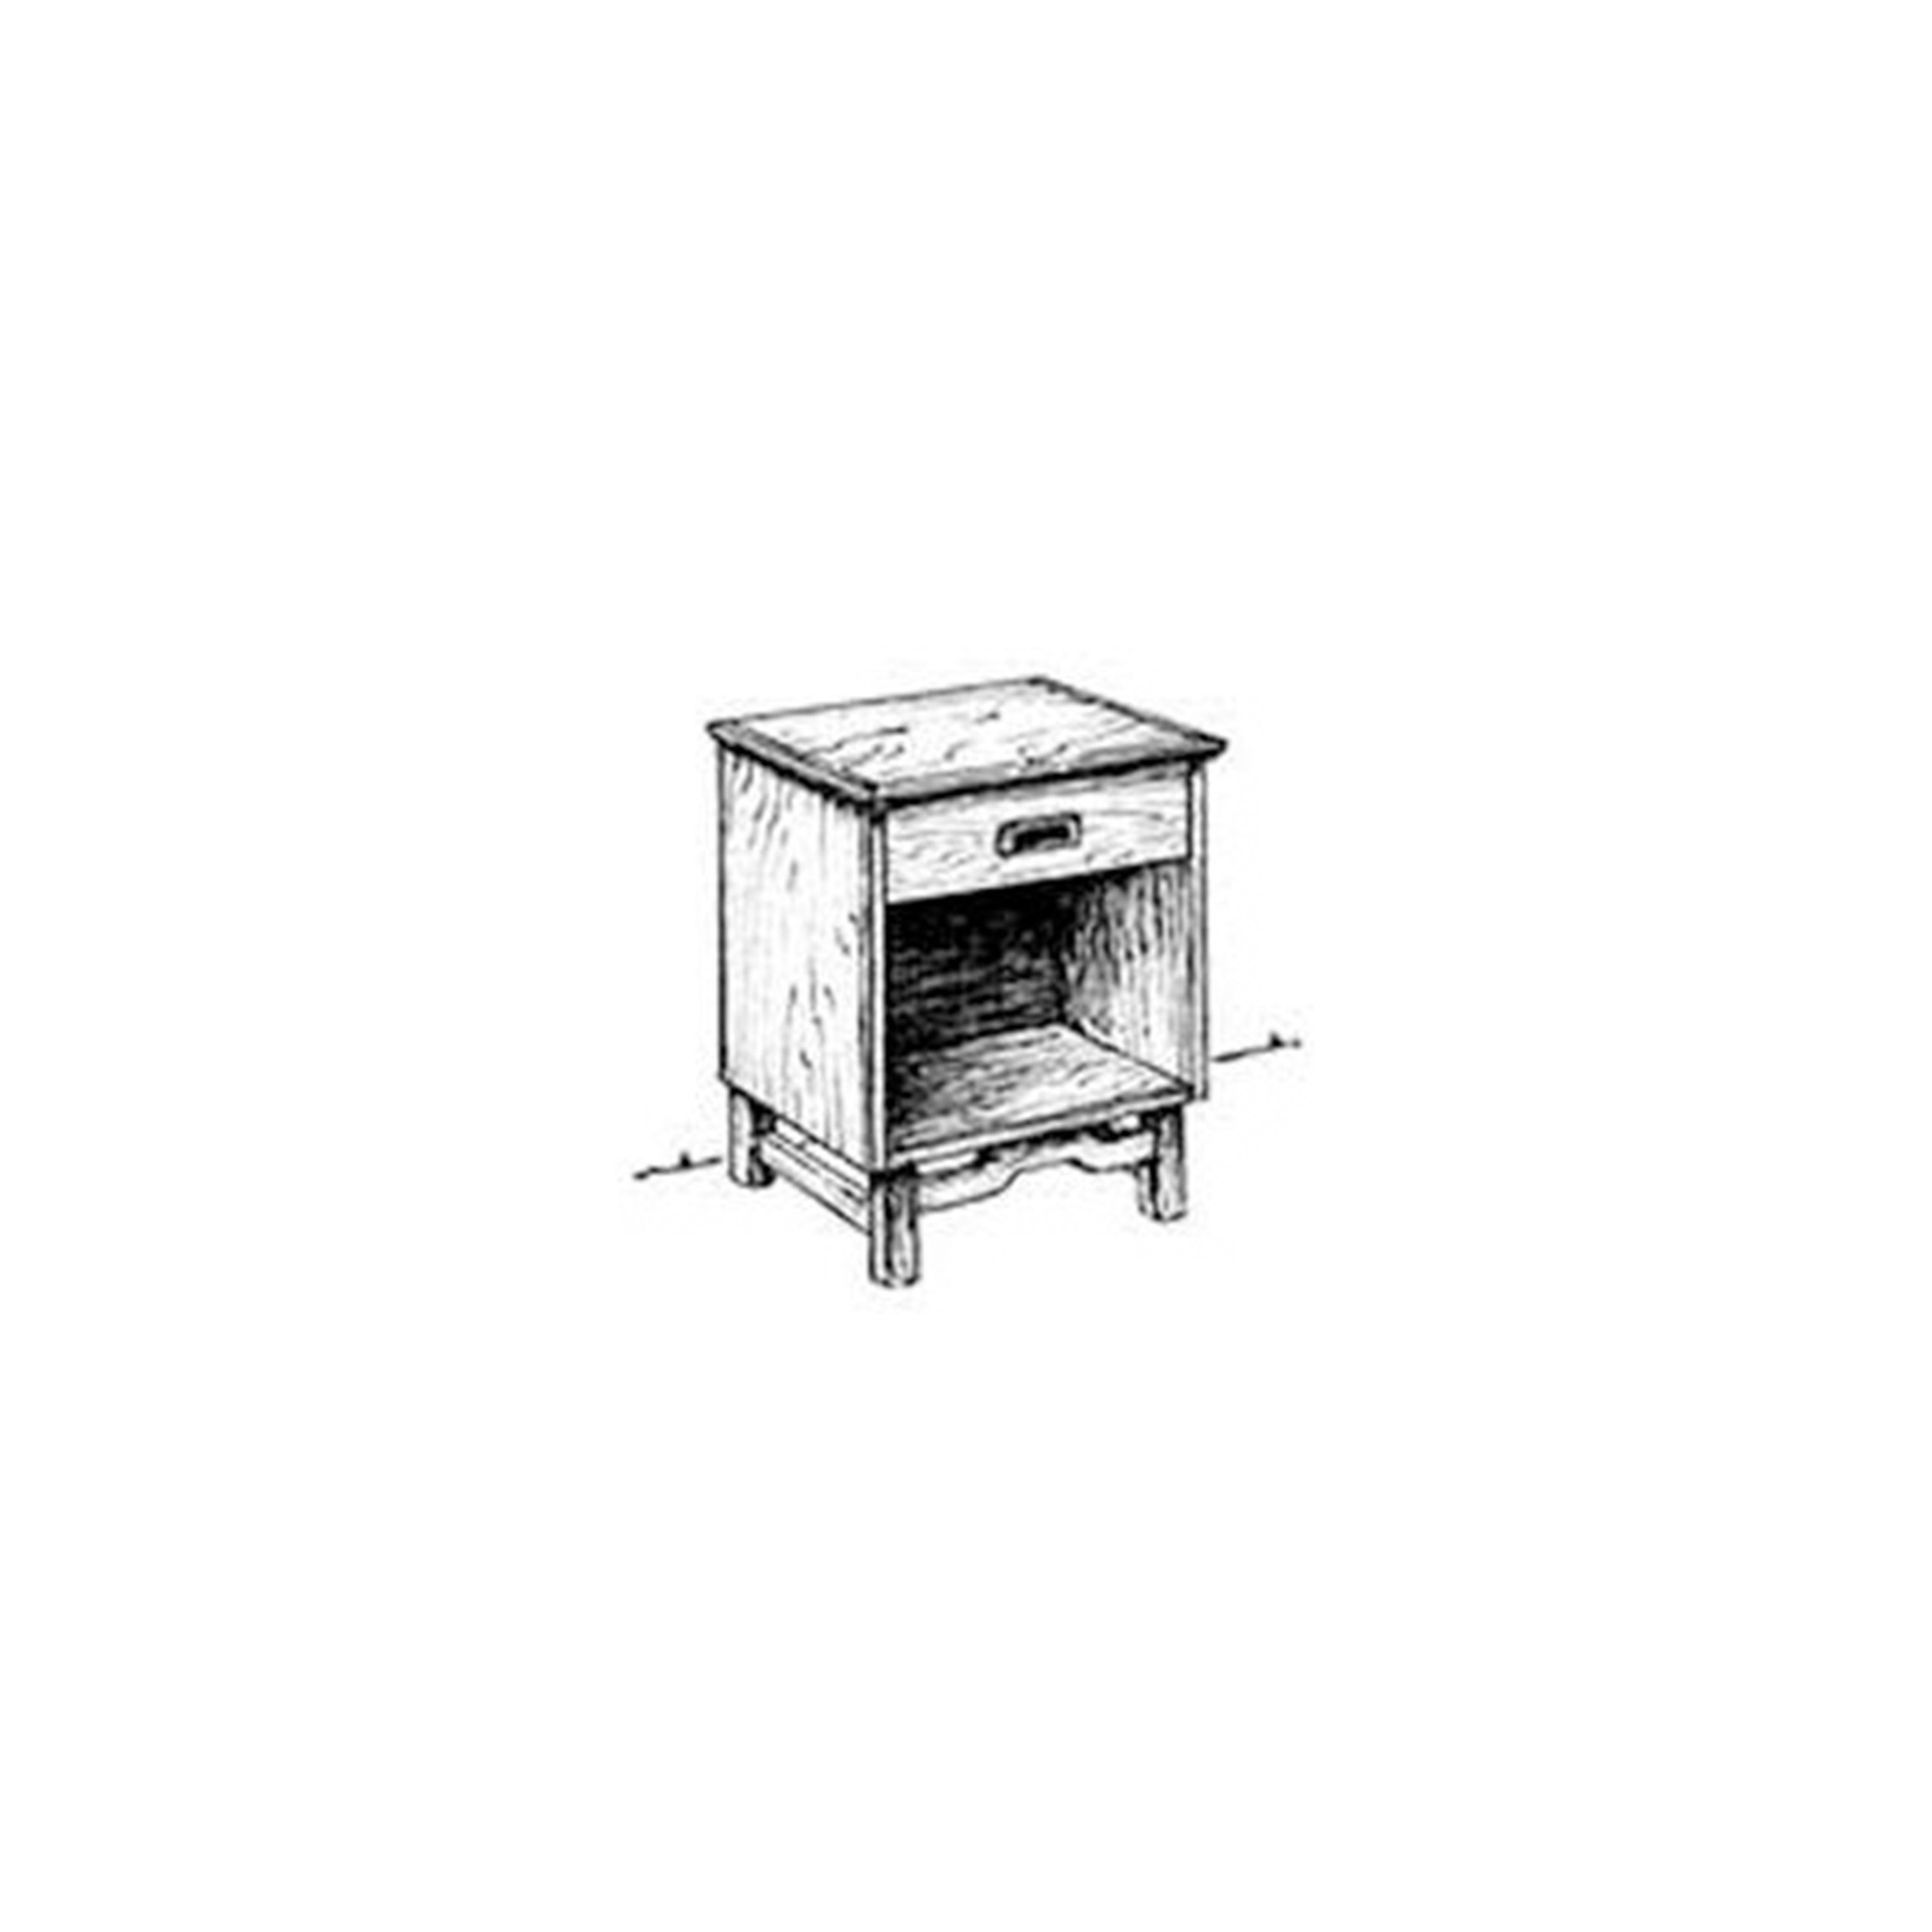 Woodworking Project Paper Plan to Build Simple Nightstand